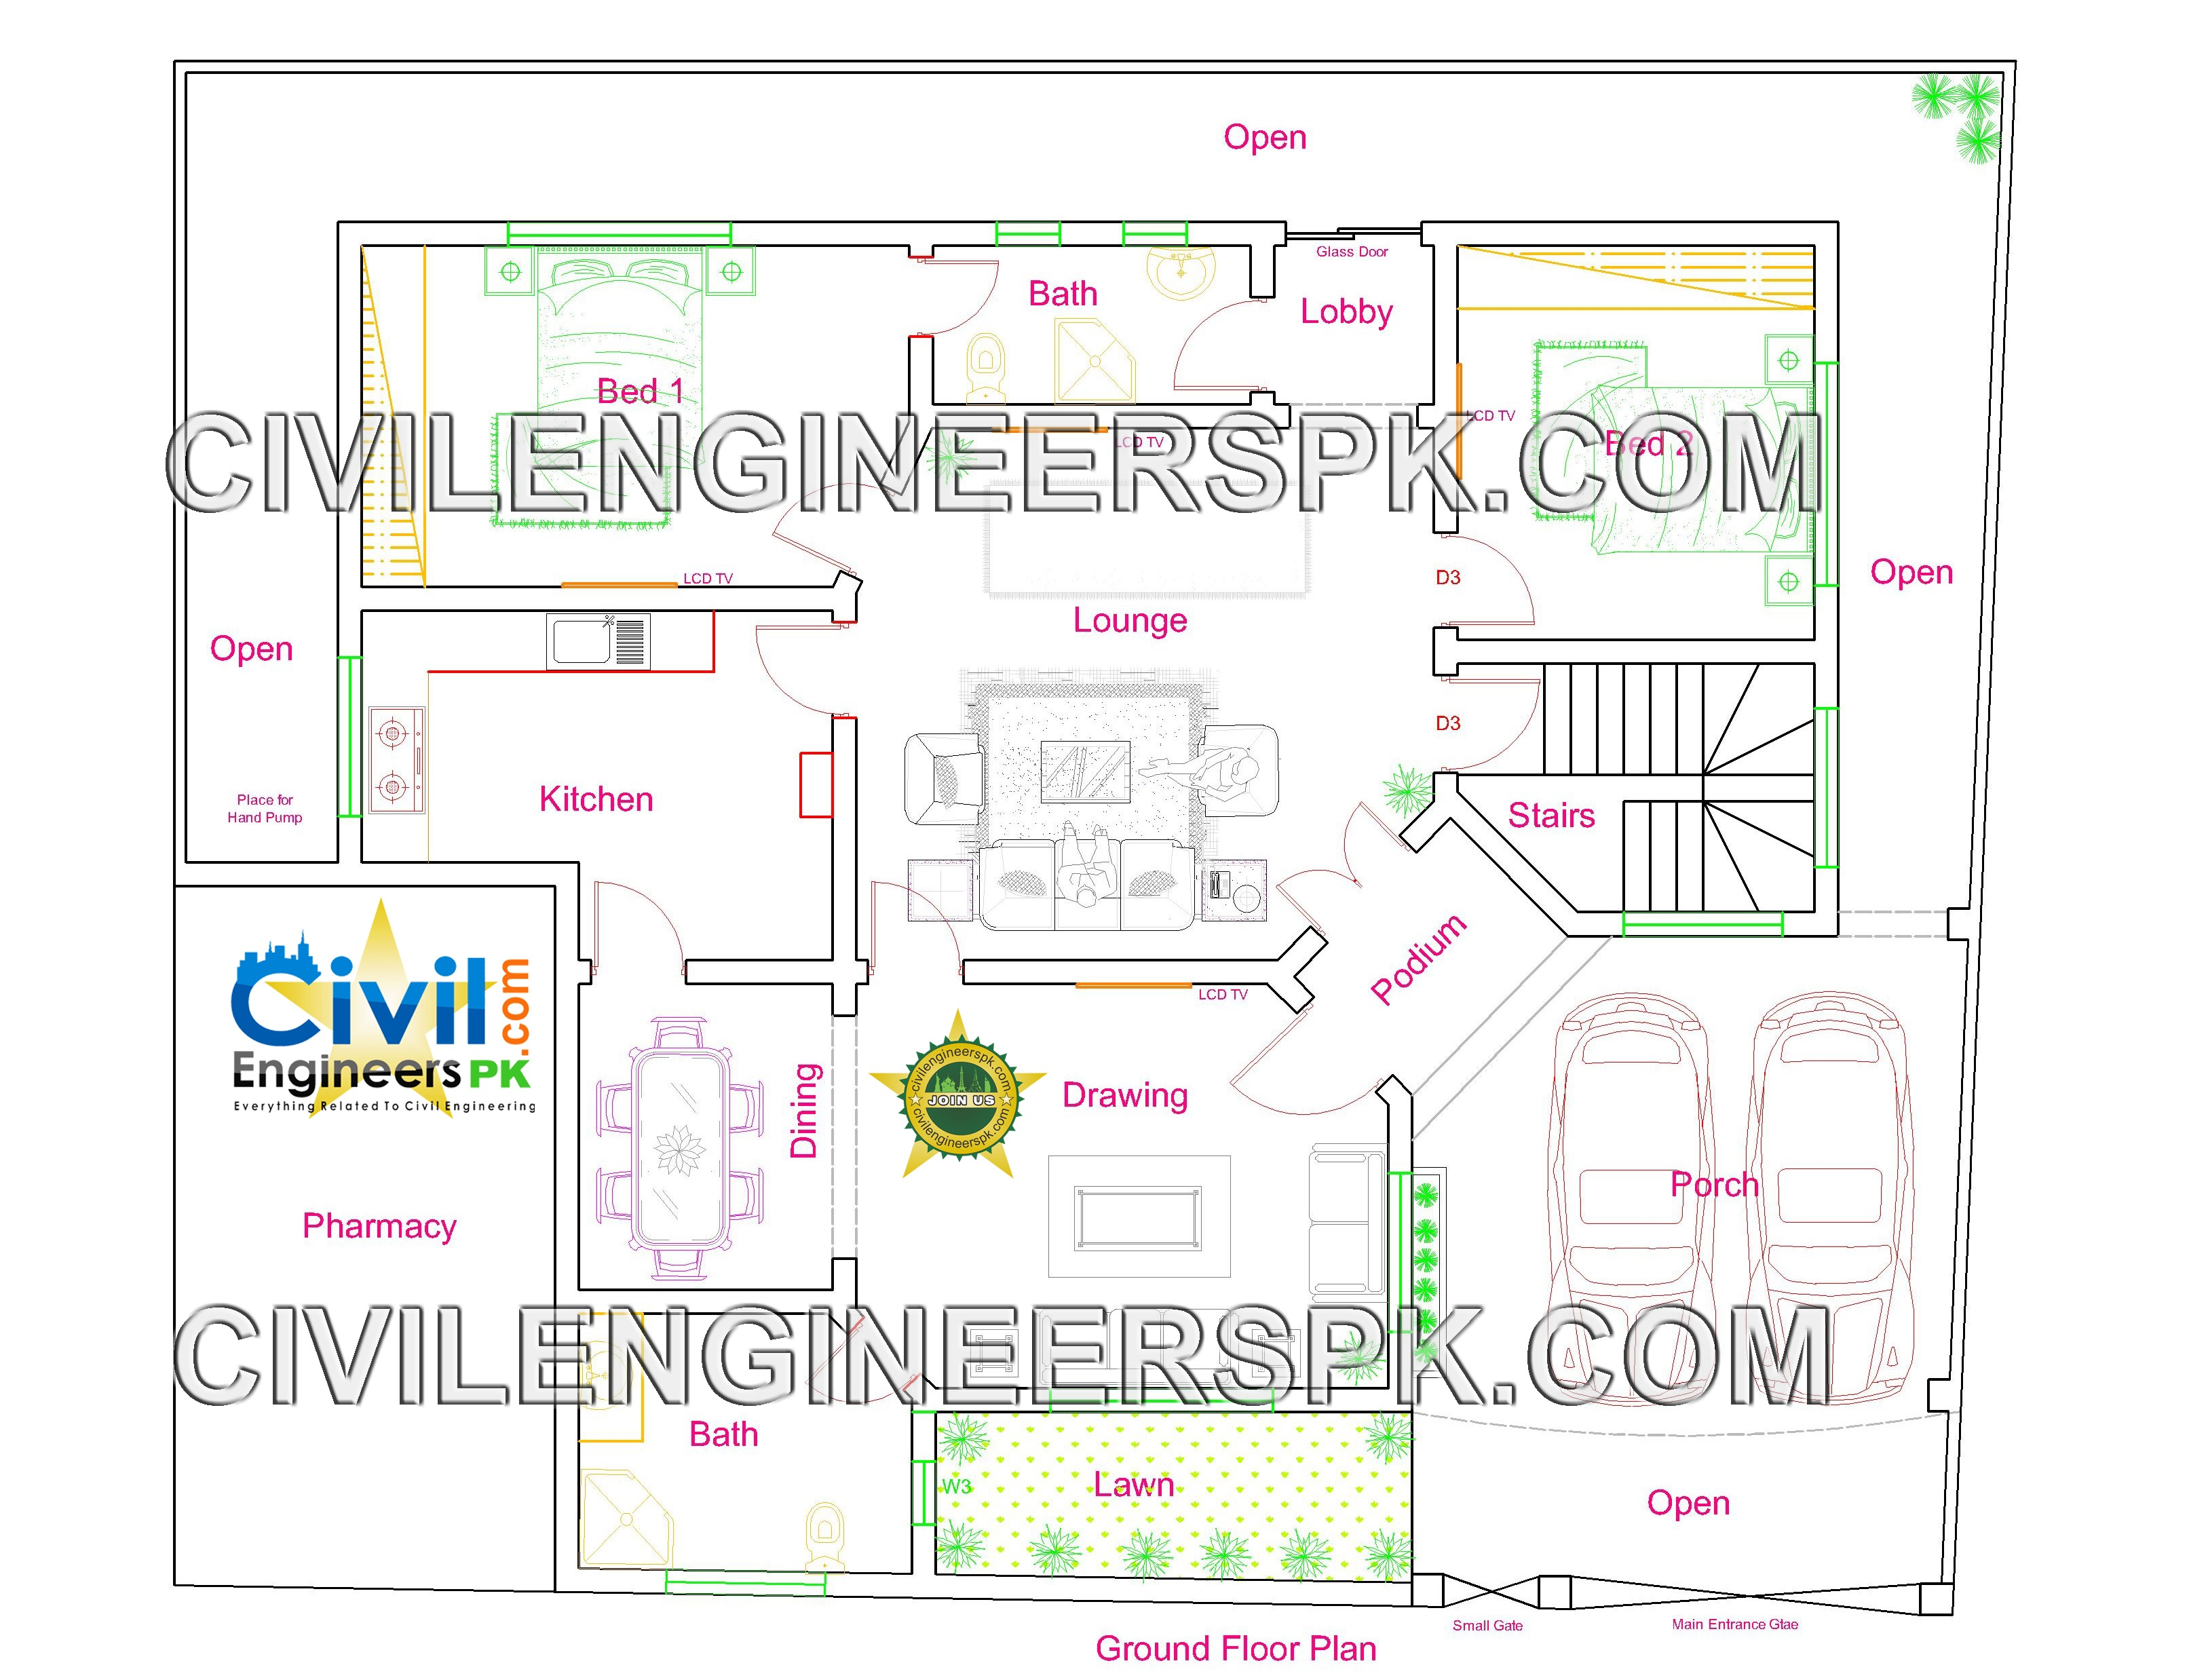 New 12 Marla House Design - Civil Engineers PK